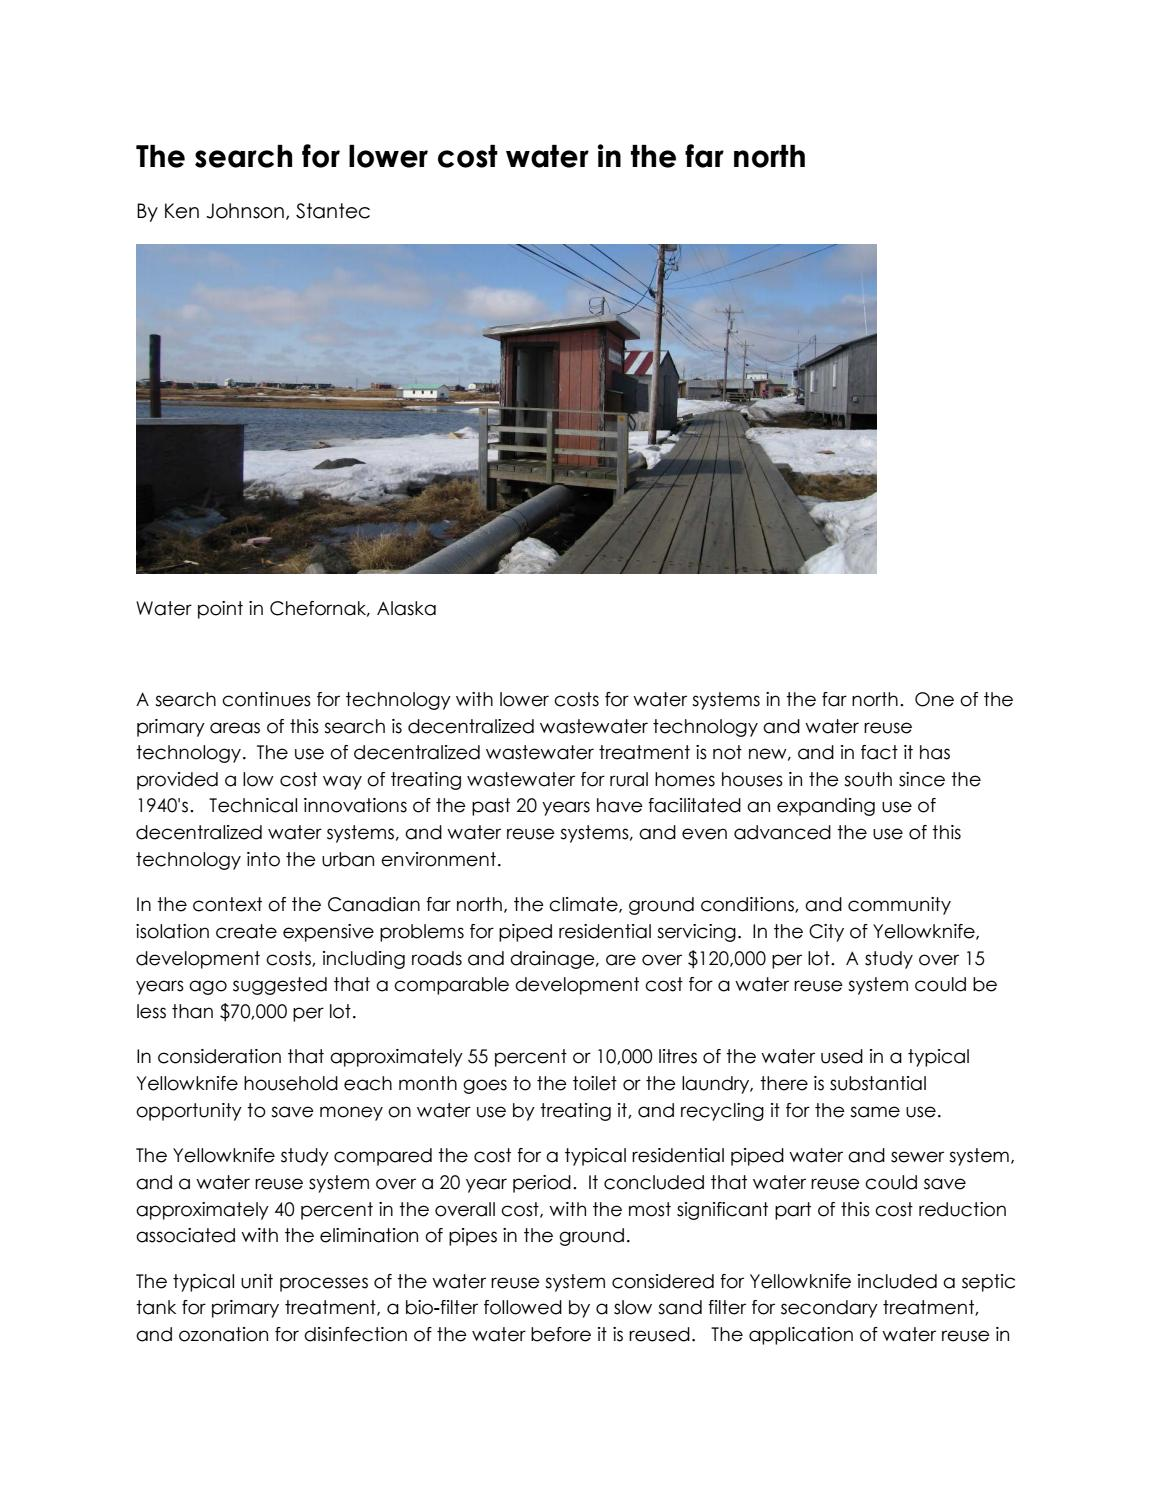 The search for lower cost water in the far north by Kenneth